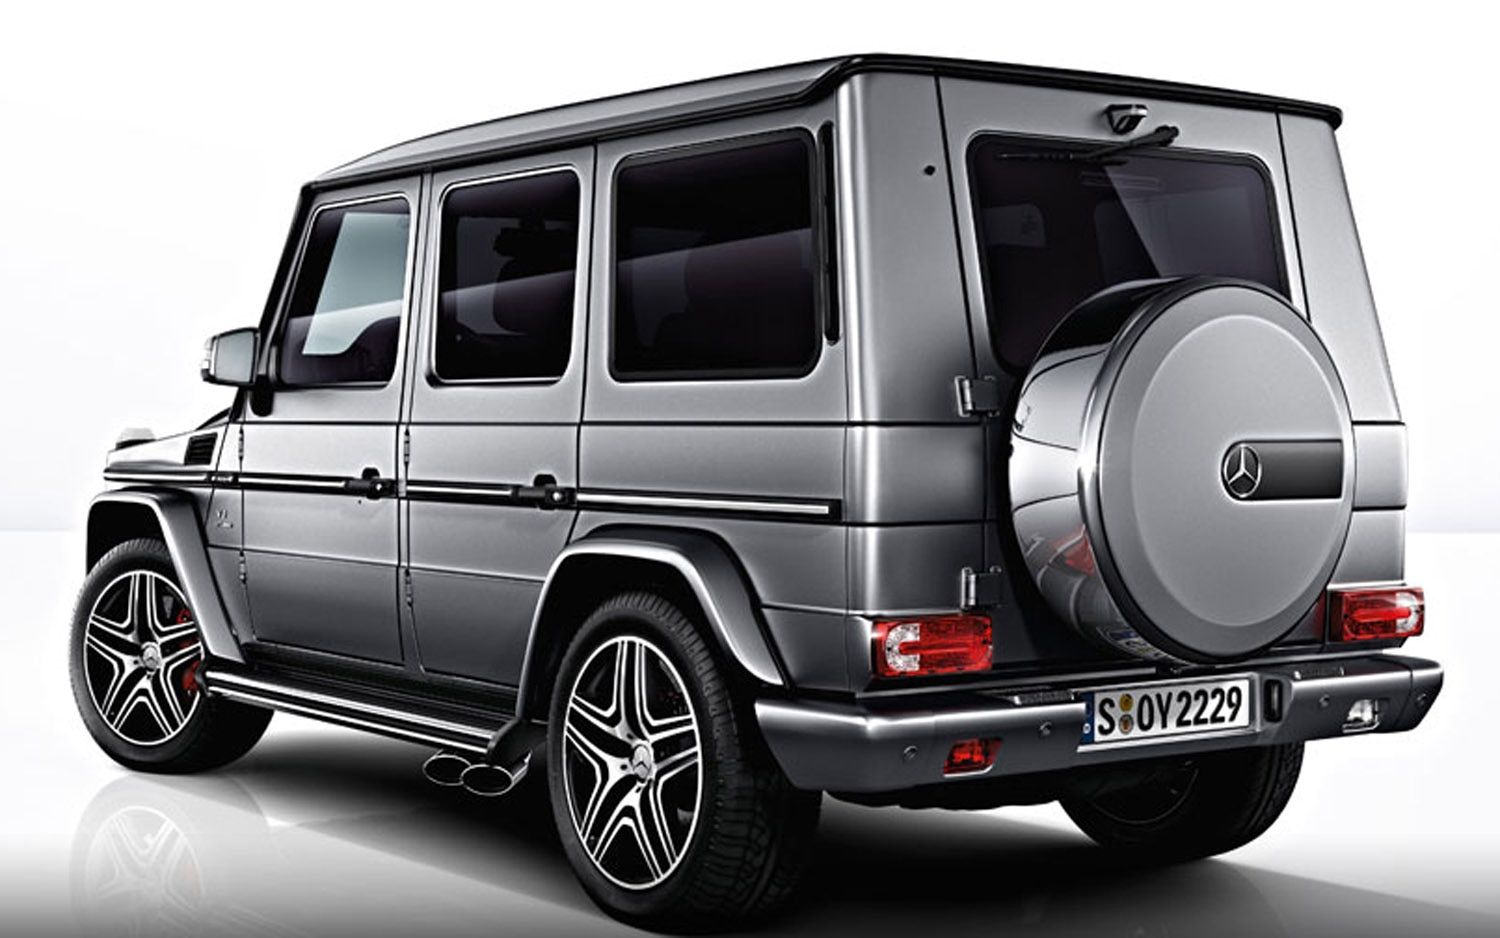 2013 Mercedes Benz G63 AMG Rear Three Quarter